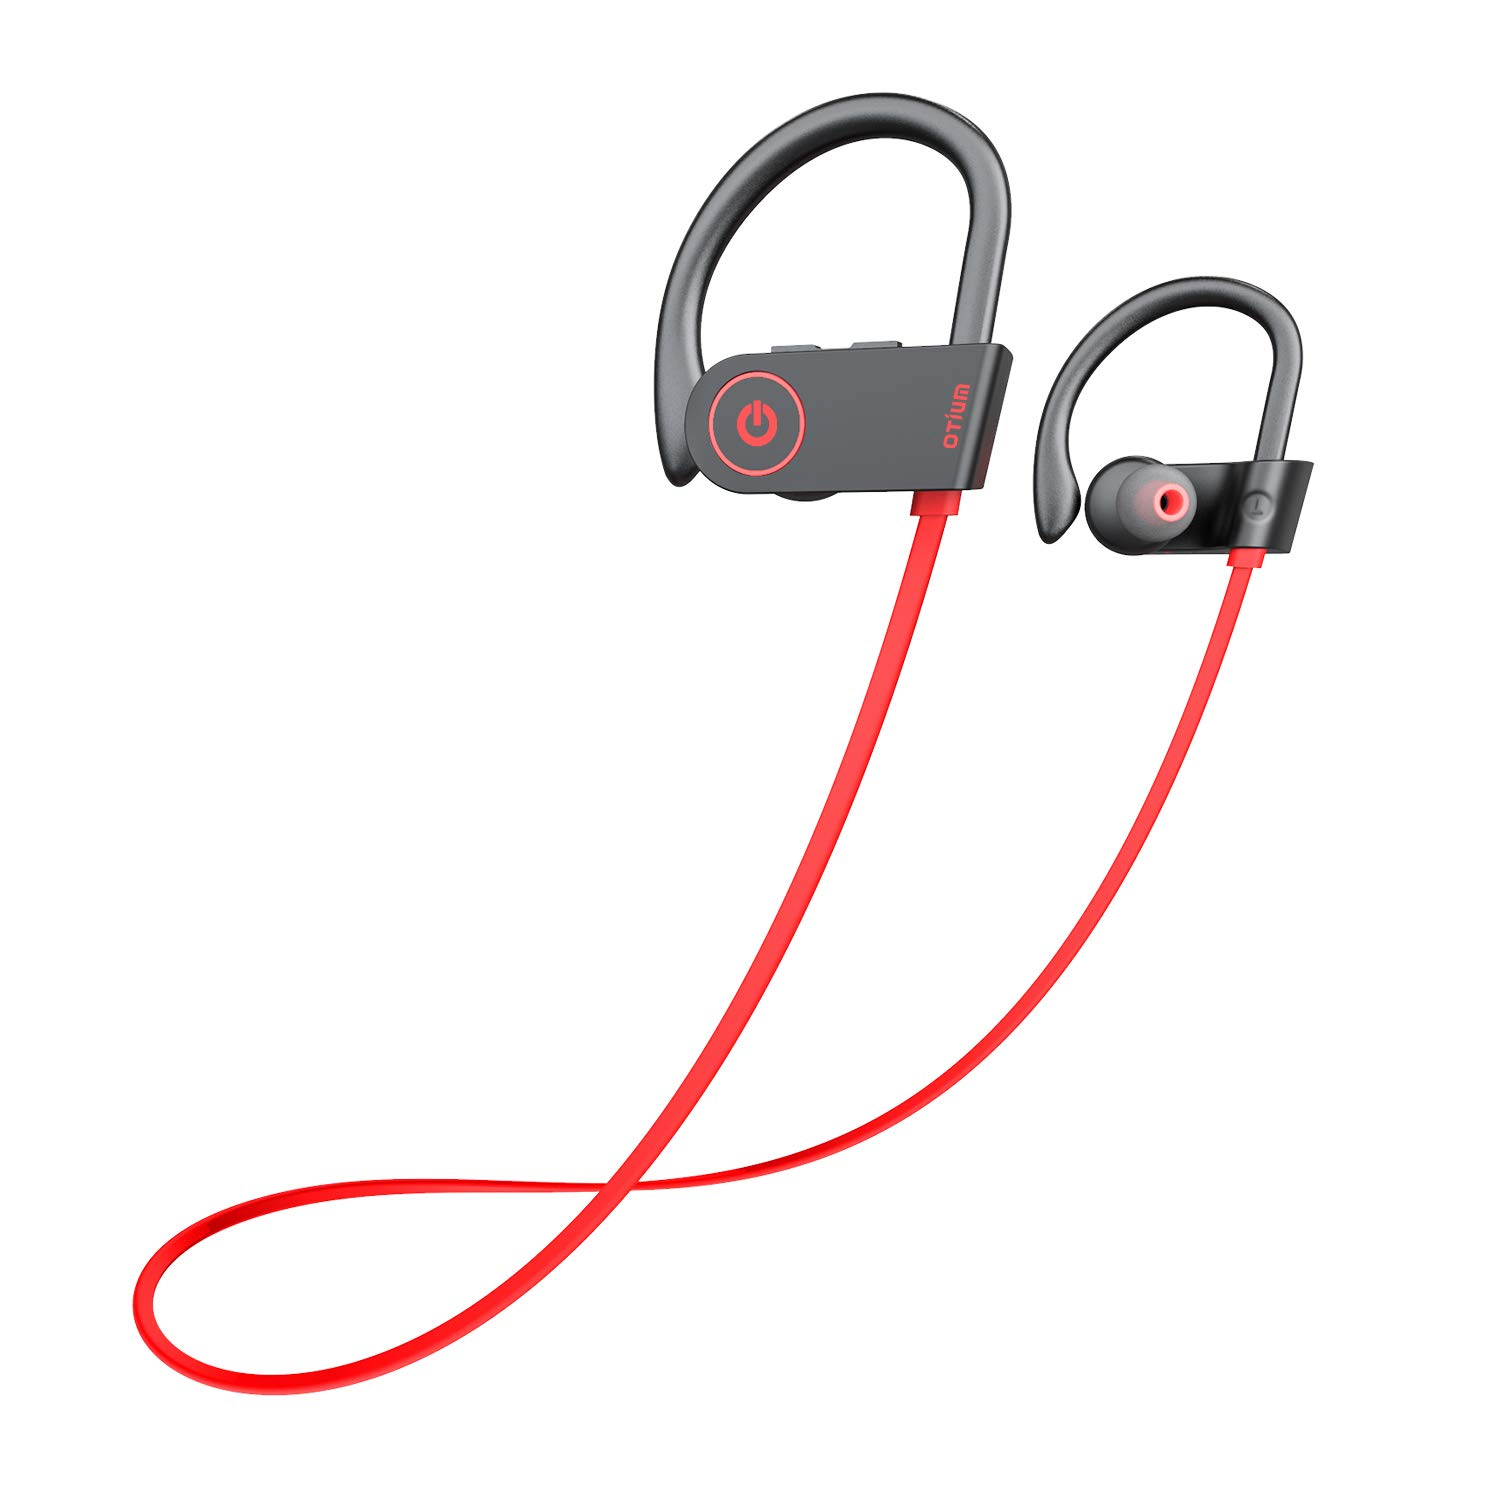 Amazon Com Otium Bluetooth Headphones Best Wireless Earbuds Ipx7 Waterproof Sports Earphones W Mic Hd Stereo Sweatproof In Ear Earbuds Gym Running Workout 8 Hour Battery Noise Cancelling Headsets Electronics